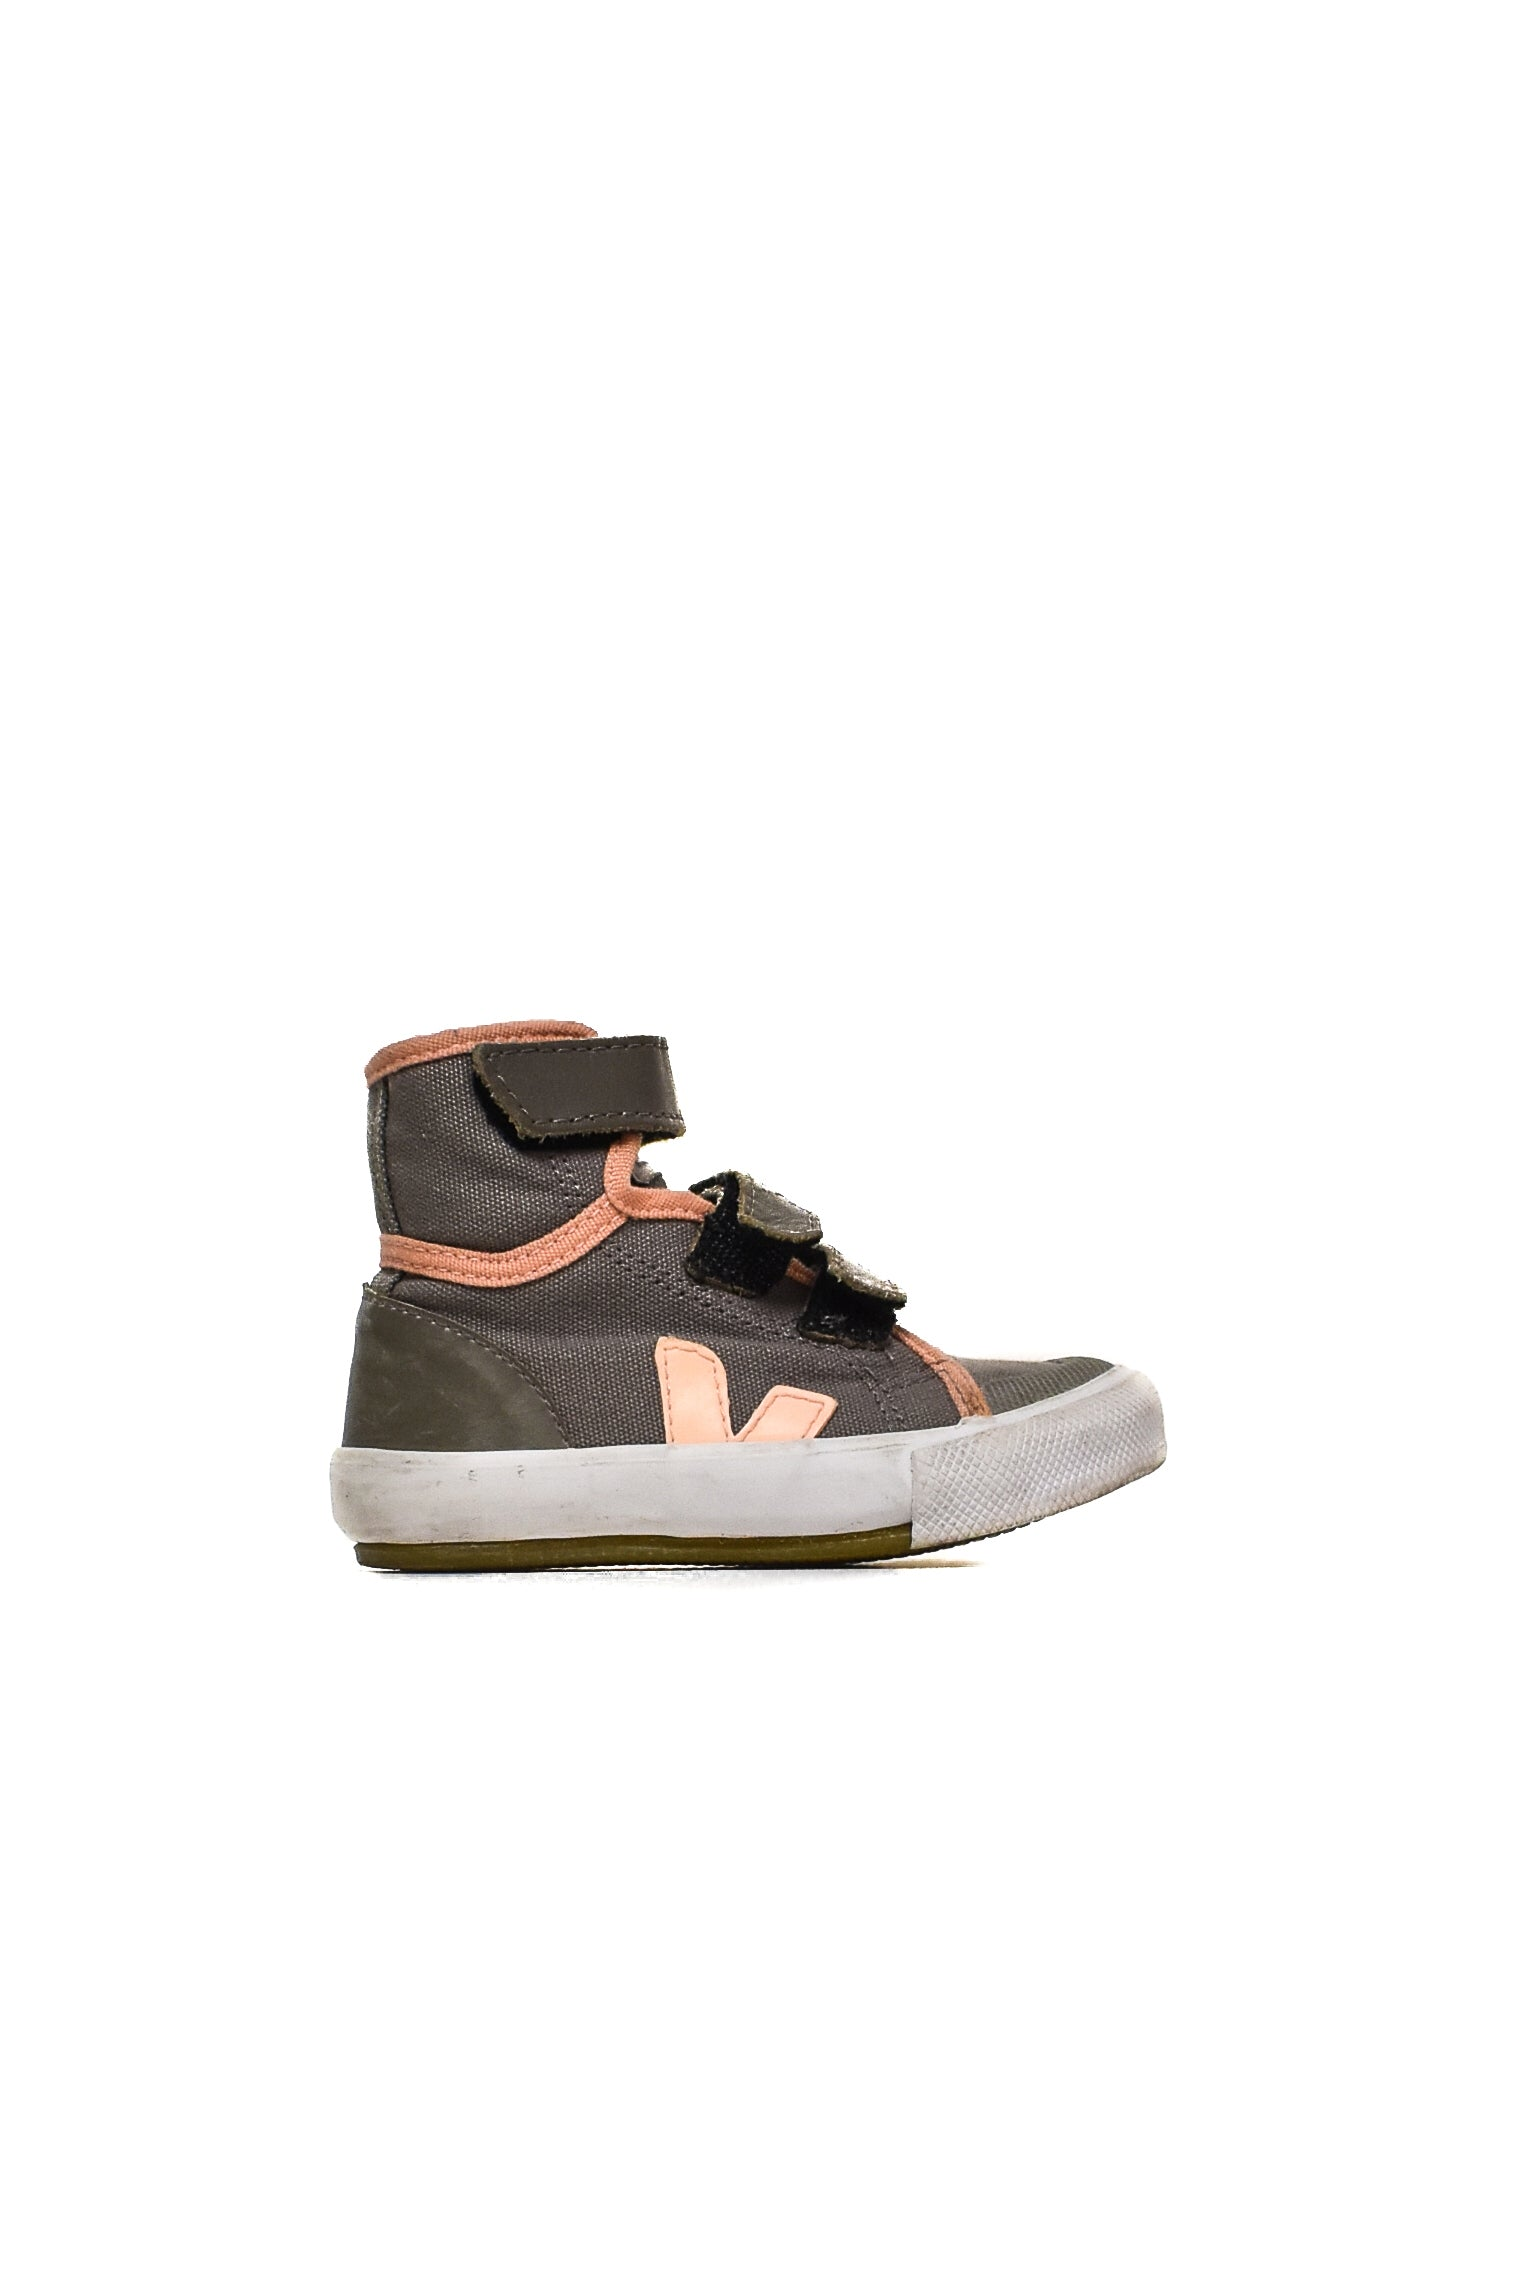 10007877 Veja Kids~Shoes 3T (EU 24) at Retykle